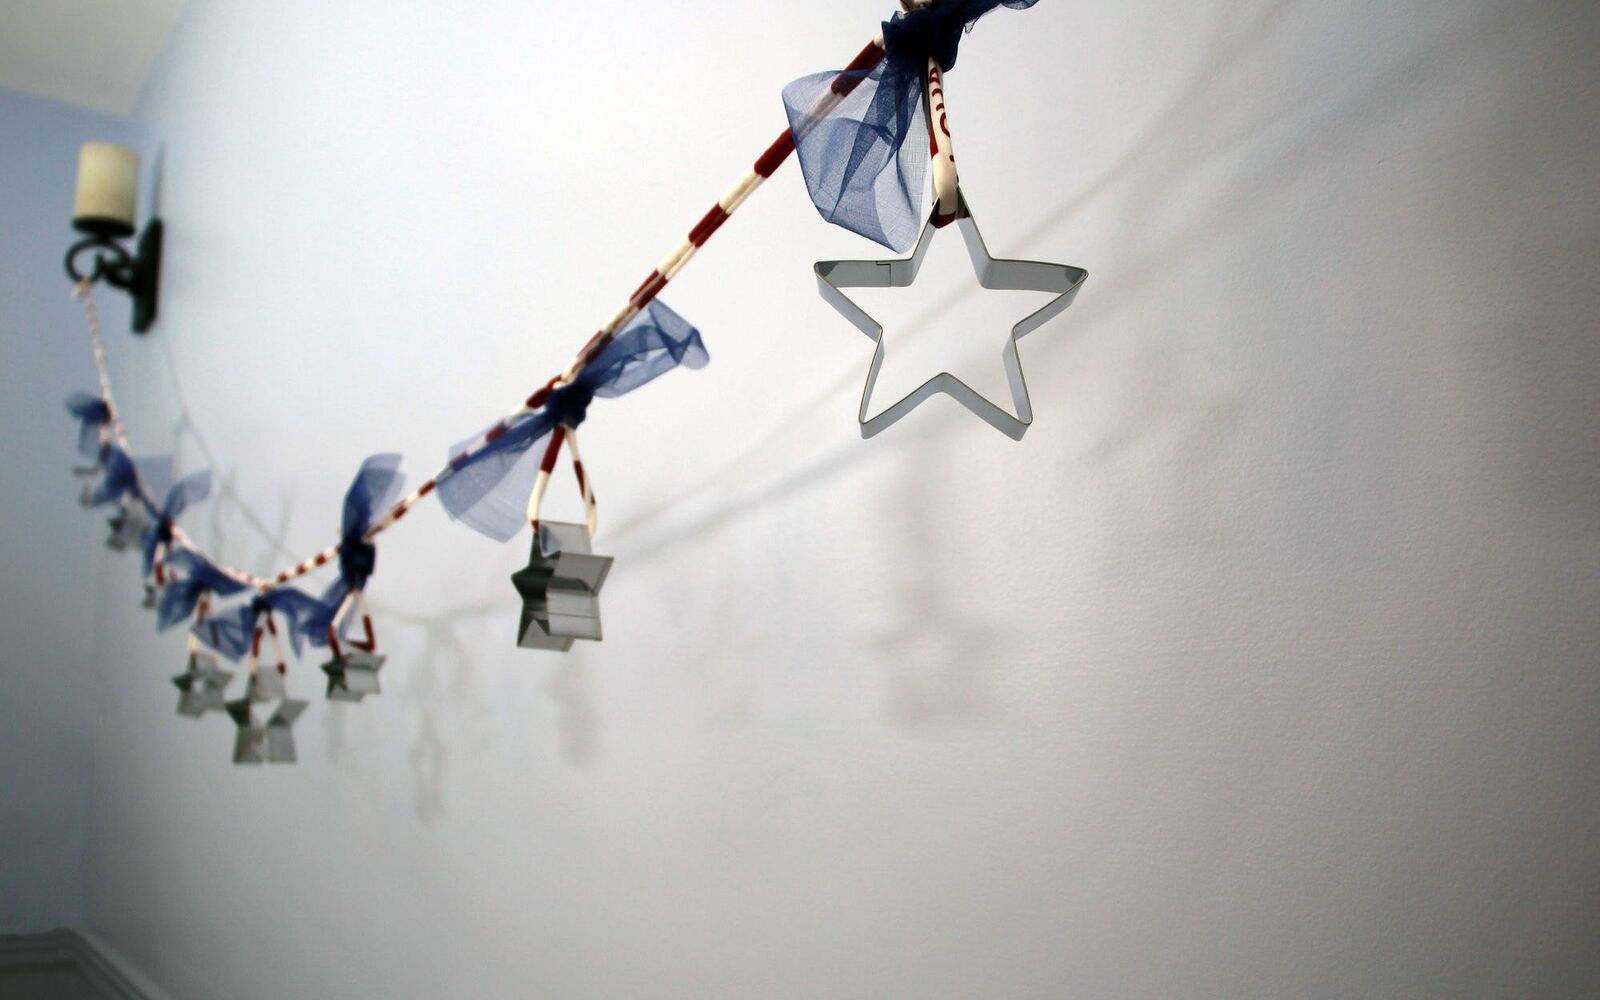 s 30 adorable diy ideas for july 4th, Hang a garland of Dollar Store cookie cutters